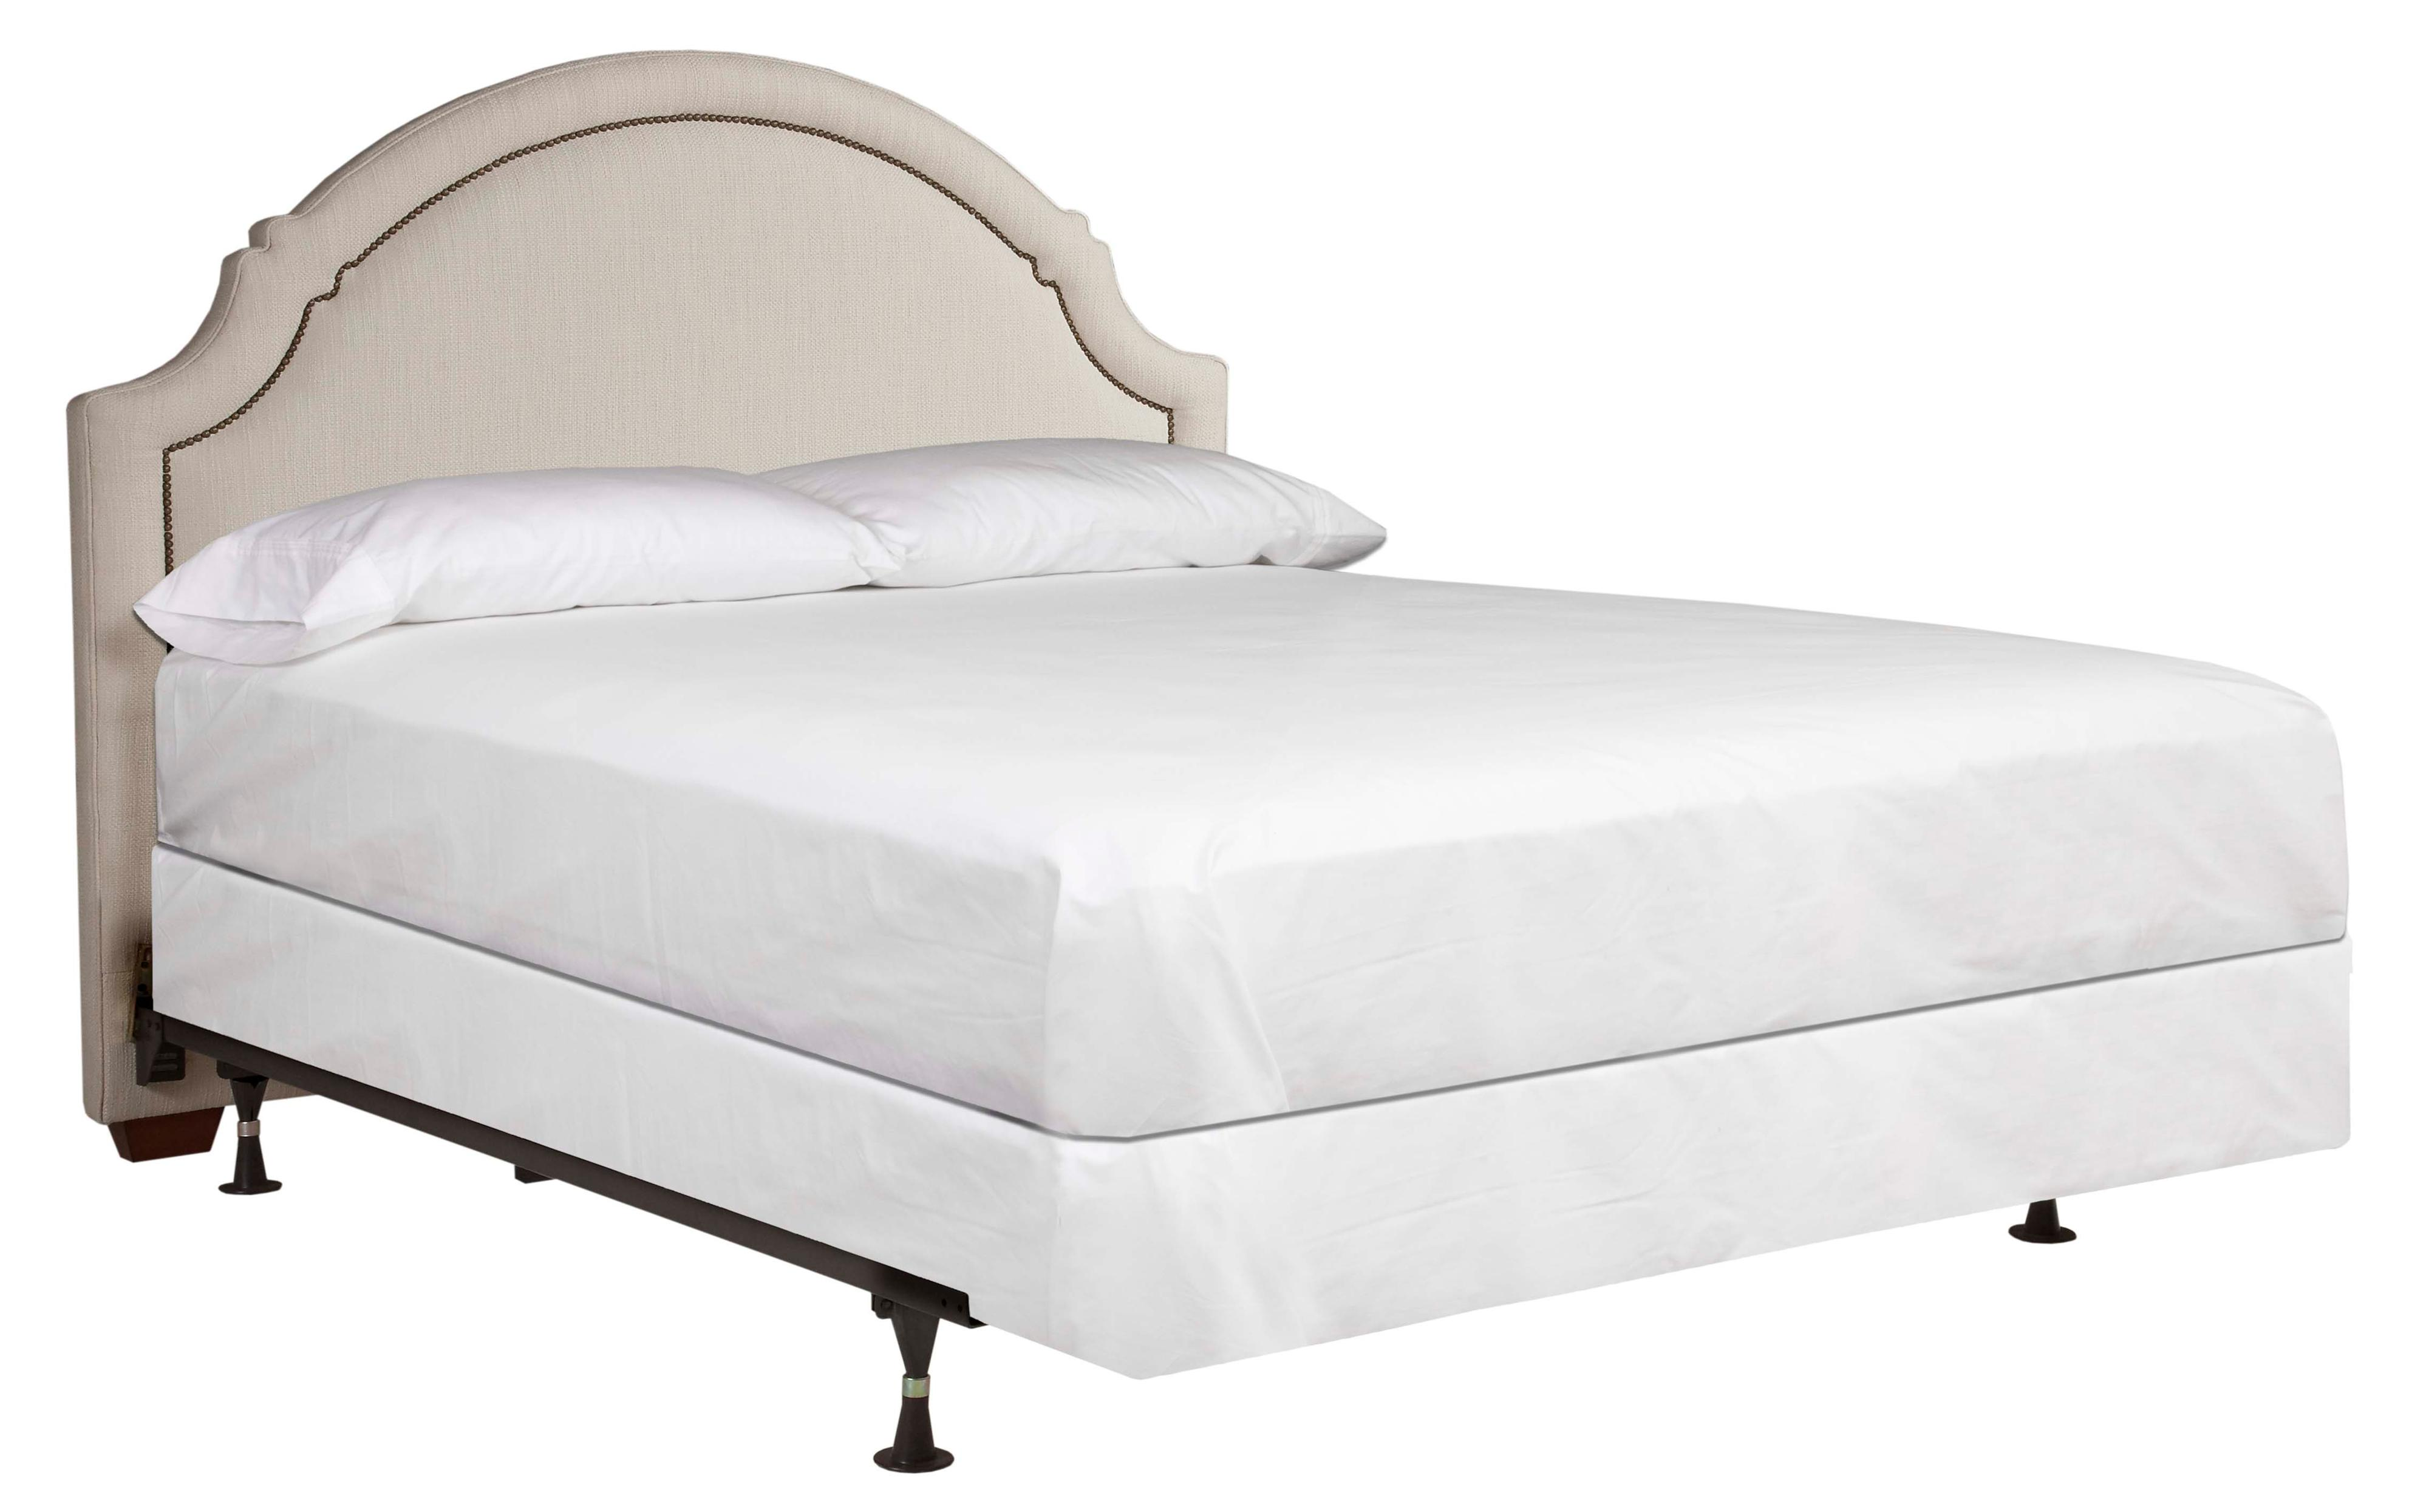 Kincaid Furniture Upholstered Beds Ashbury King Headboard - Item Number: 10-266H